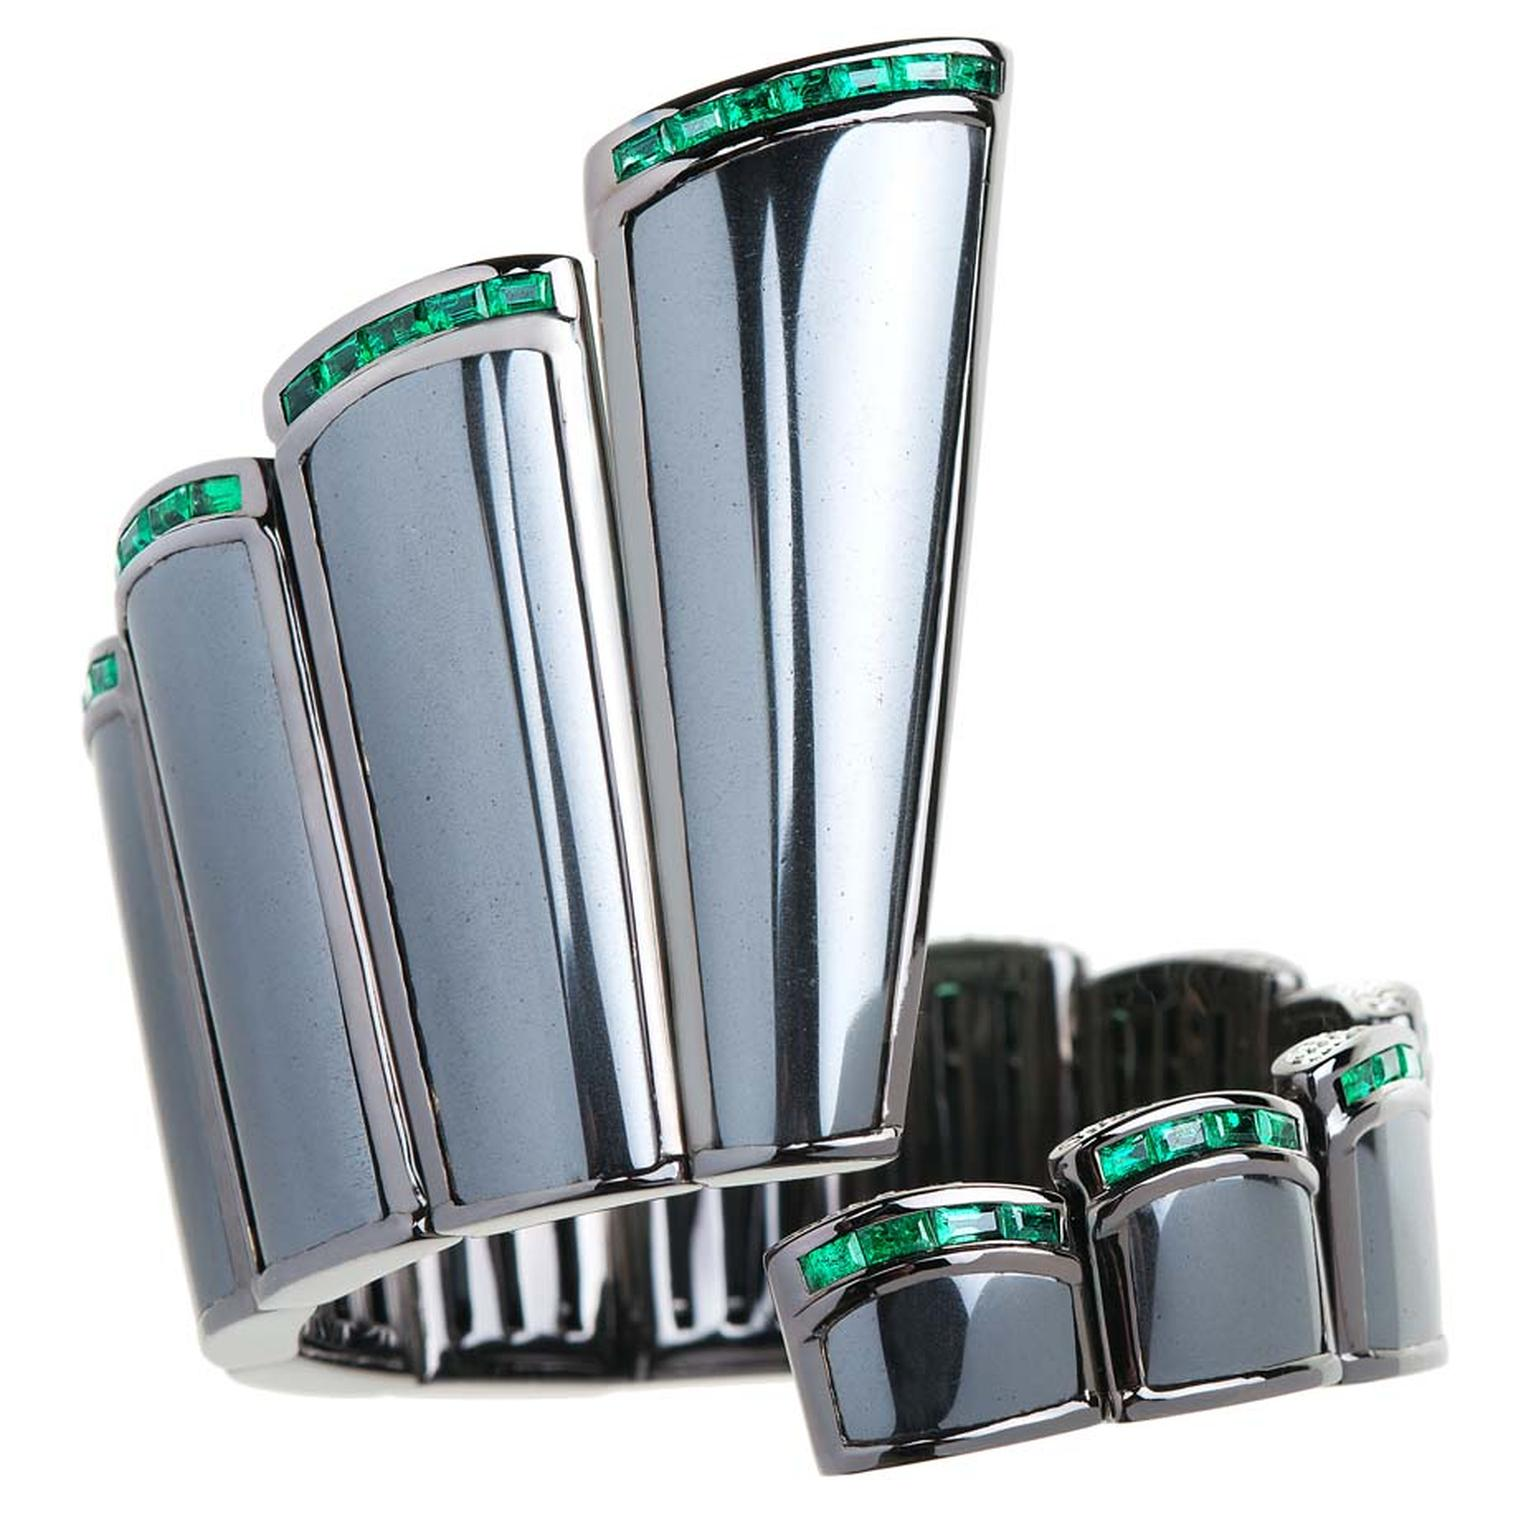 Cuff bracelet in black rhodium with hematite, baguette-cut emeralds and diamonds from Nikos Koulis' new Universe line.